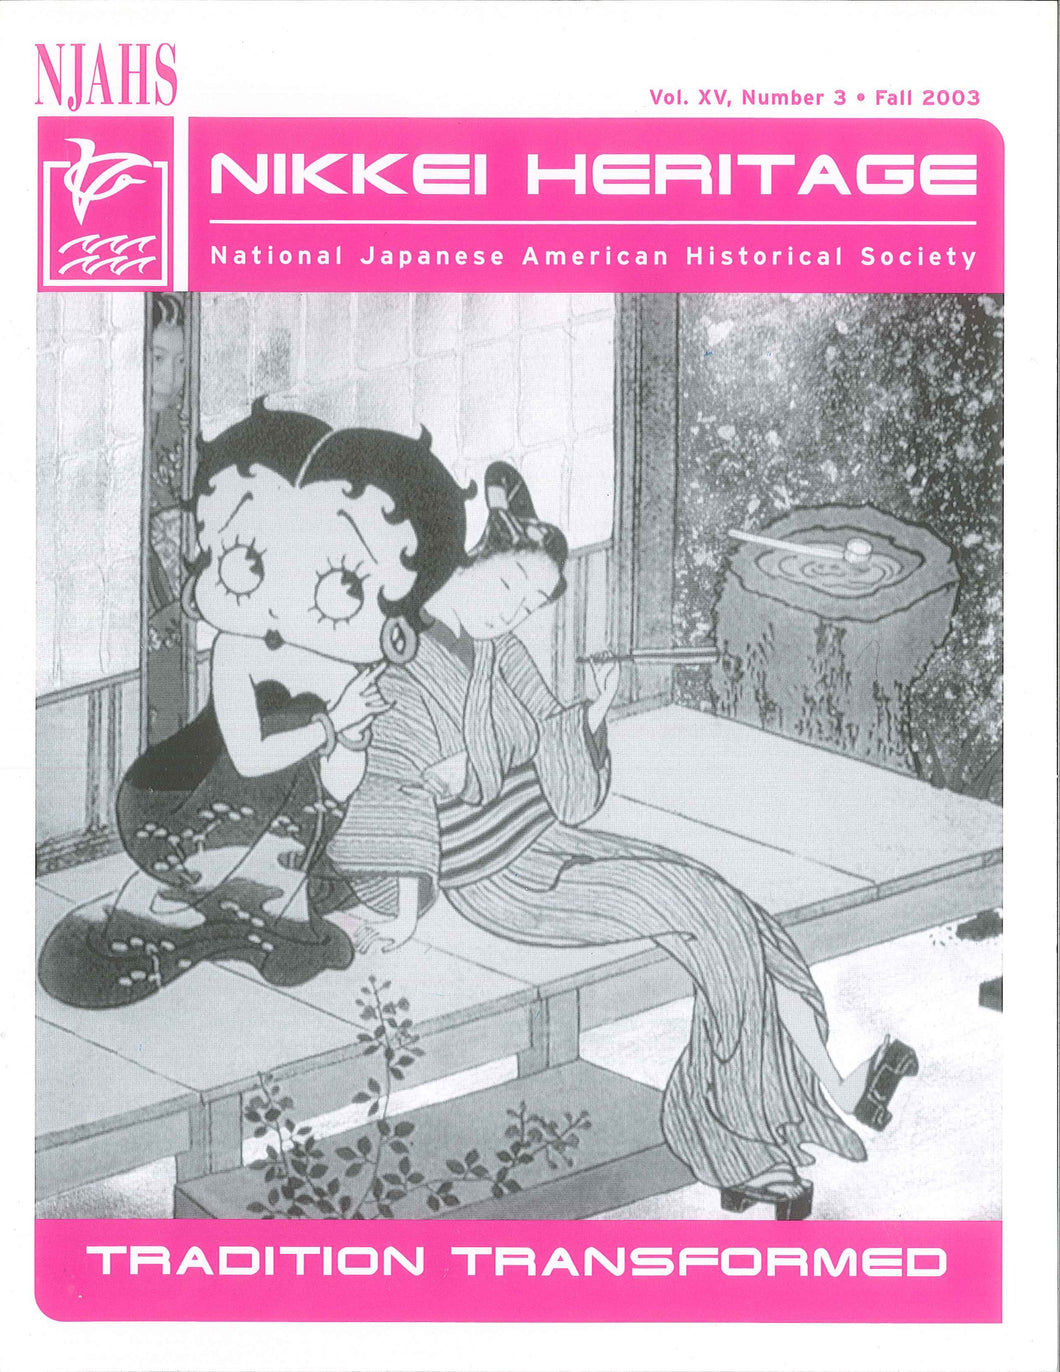 Nikkei Heritage - Tradition Transformed